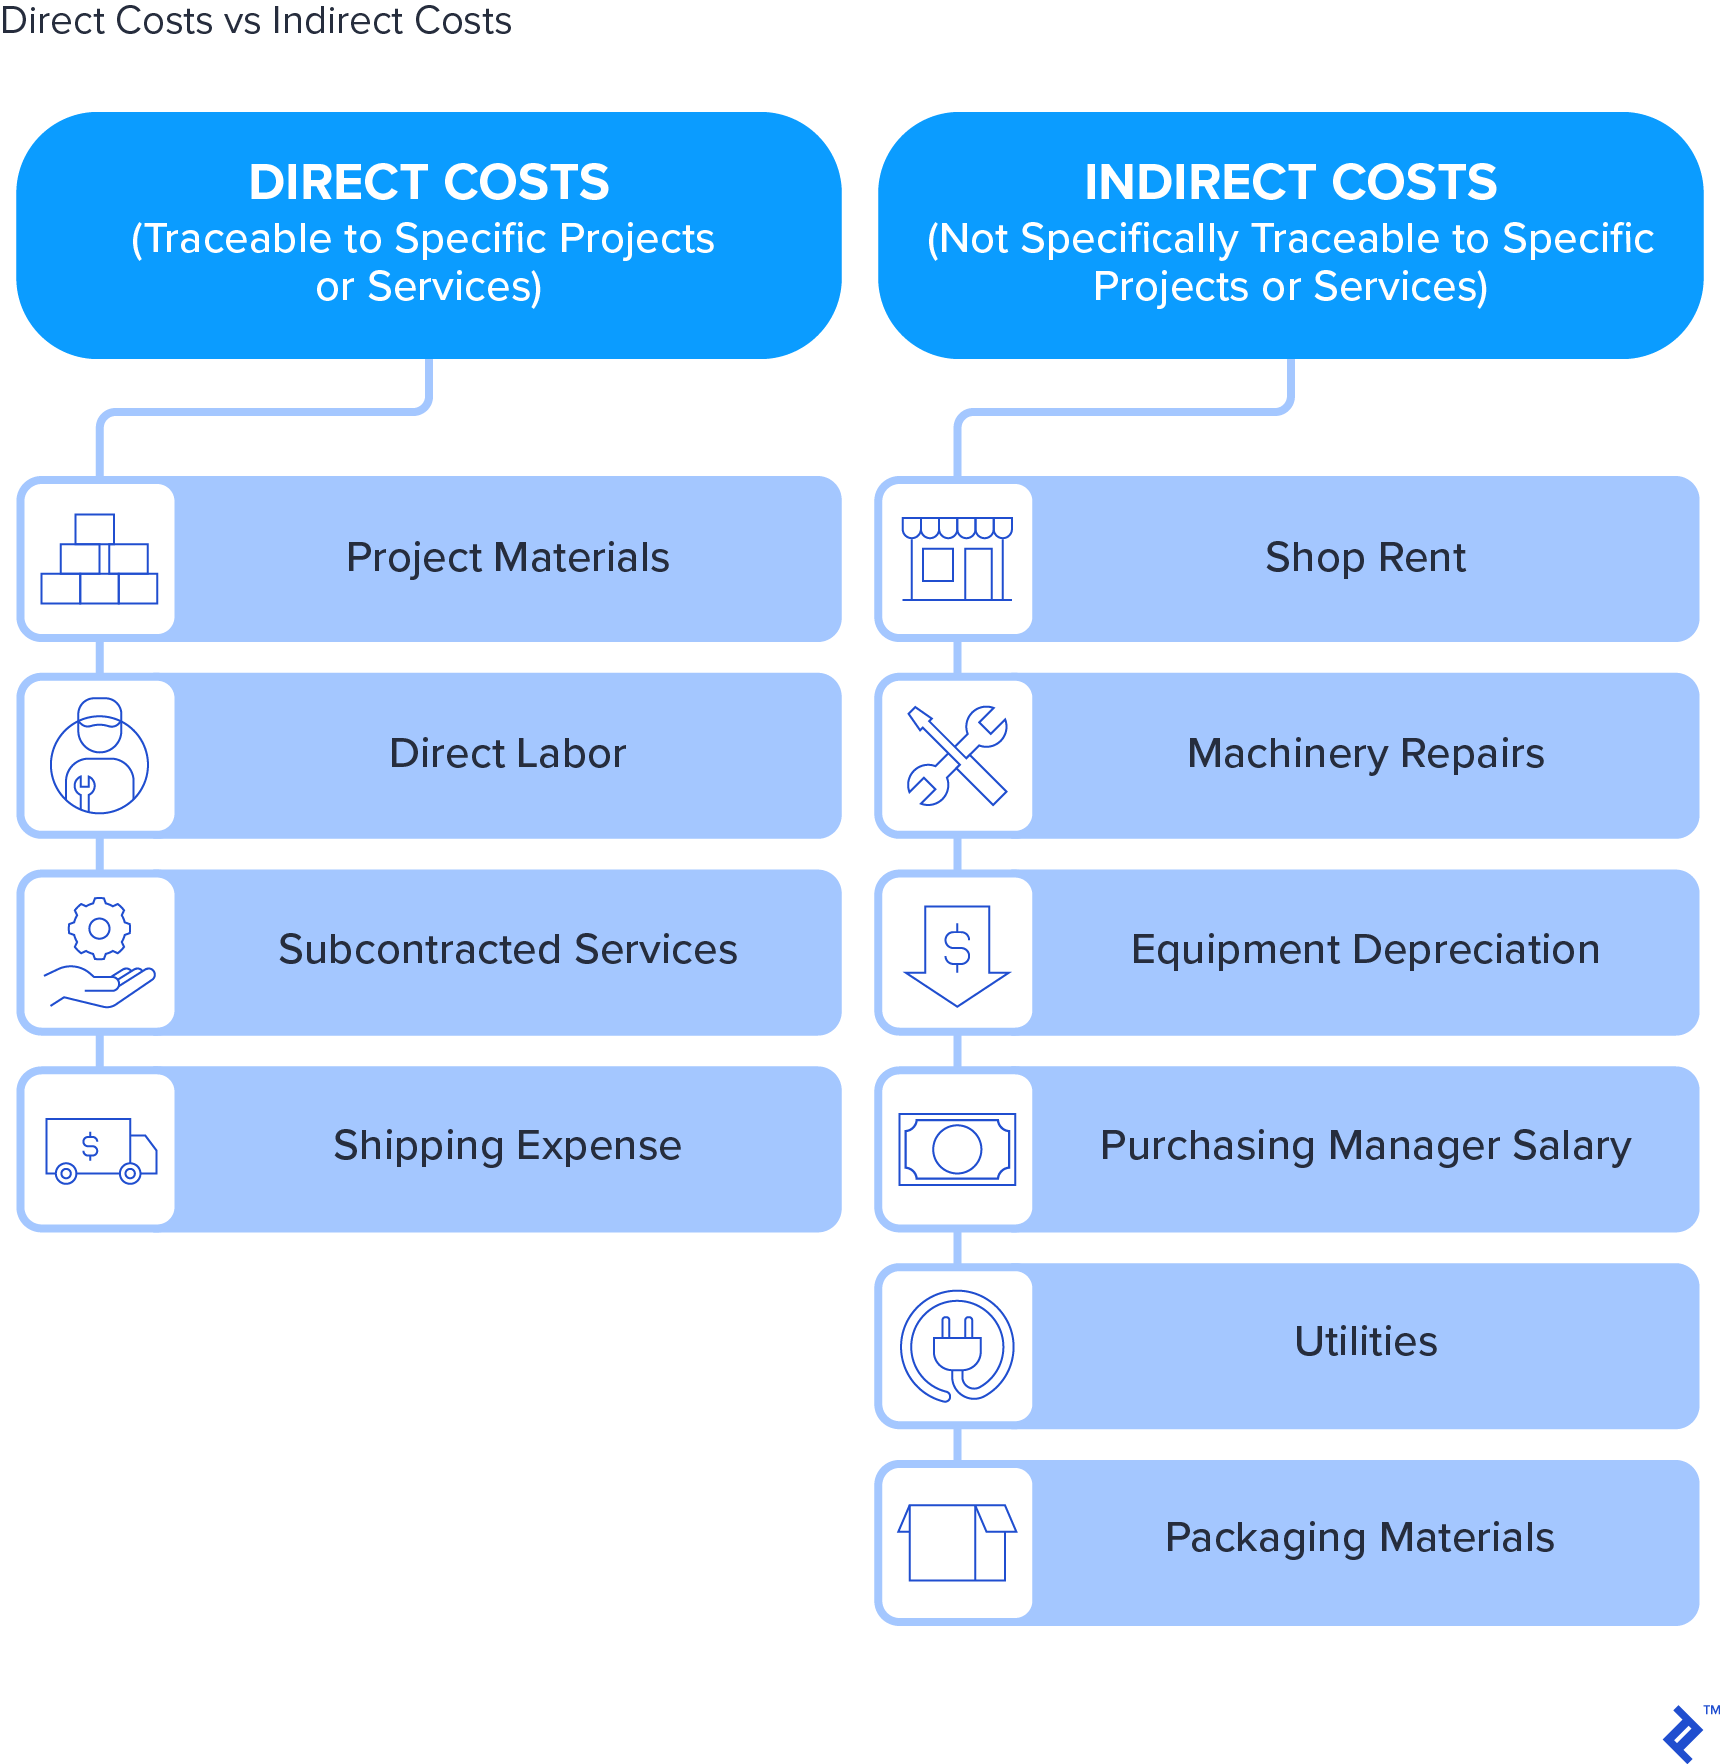 Direct costs versus indirect costs